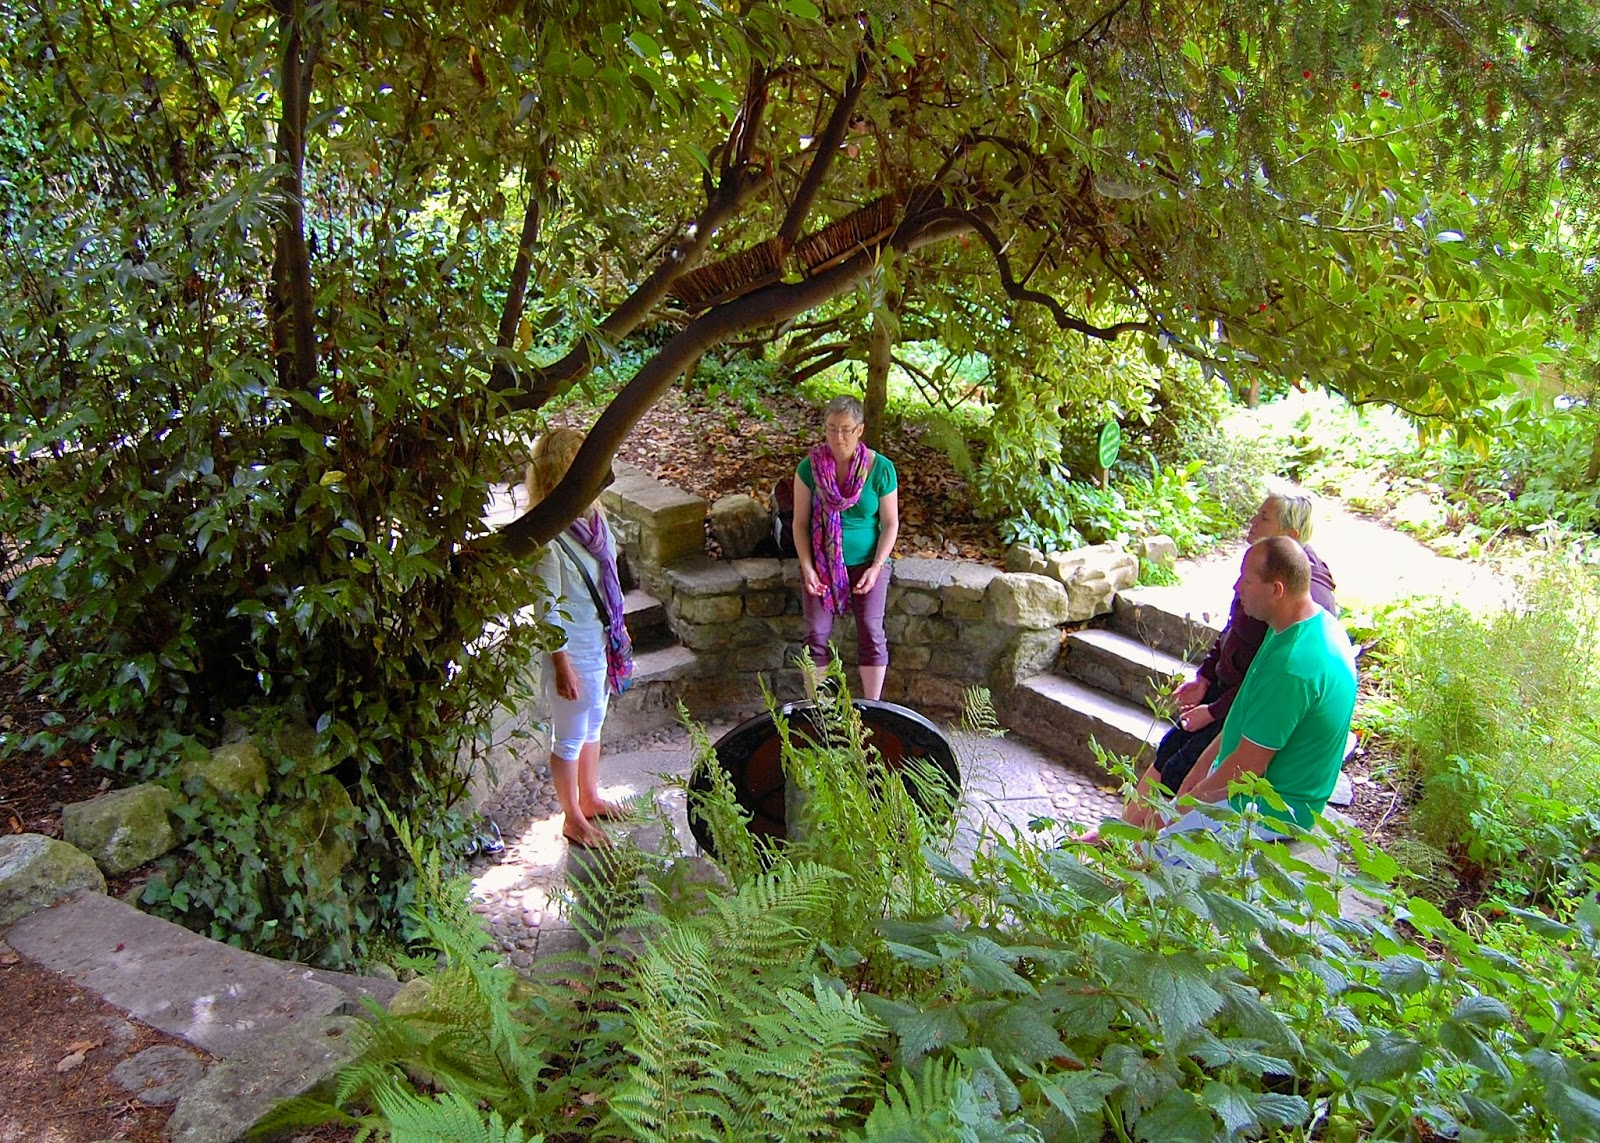 Meditating seekers at the Chalice Well